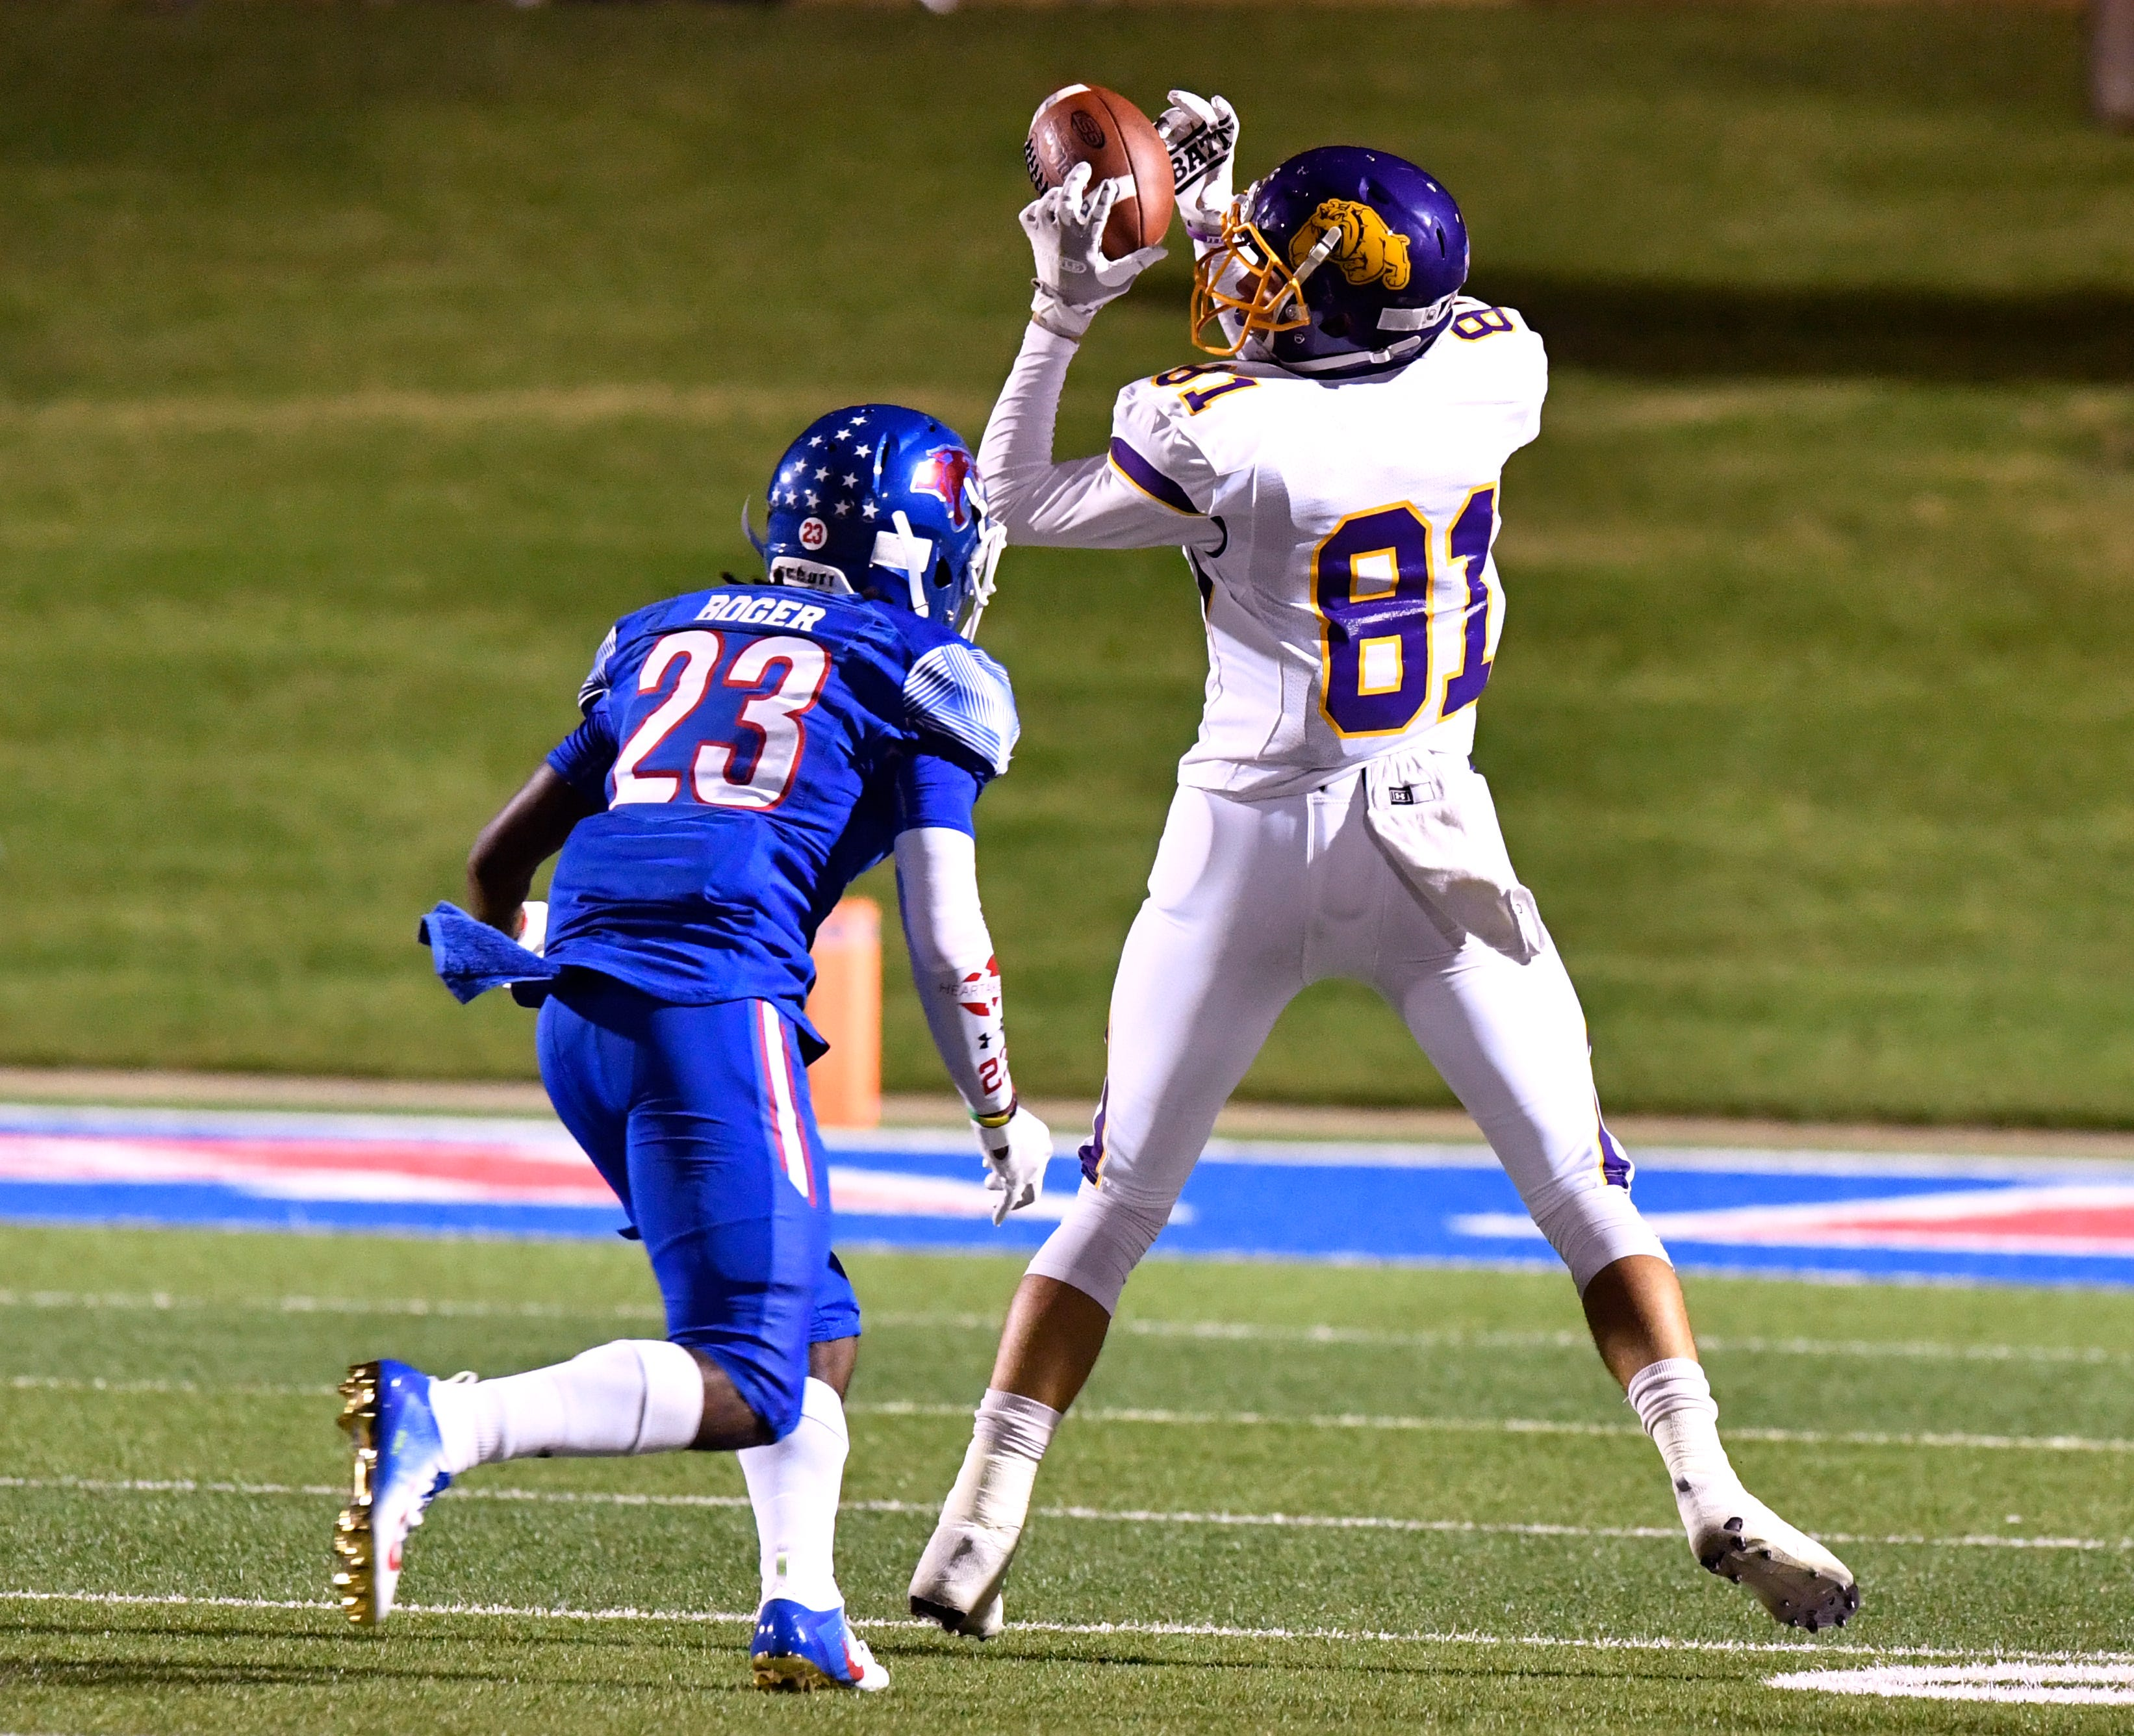 Wylie receiver Hayden Keidl (81) catches a pass over a Cooper defender during last week's 48-0 loss. The Bulldogs are 0-4 for the first time since a winless 1982 season.